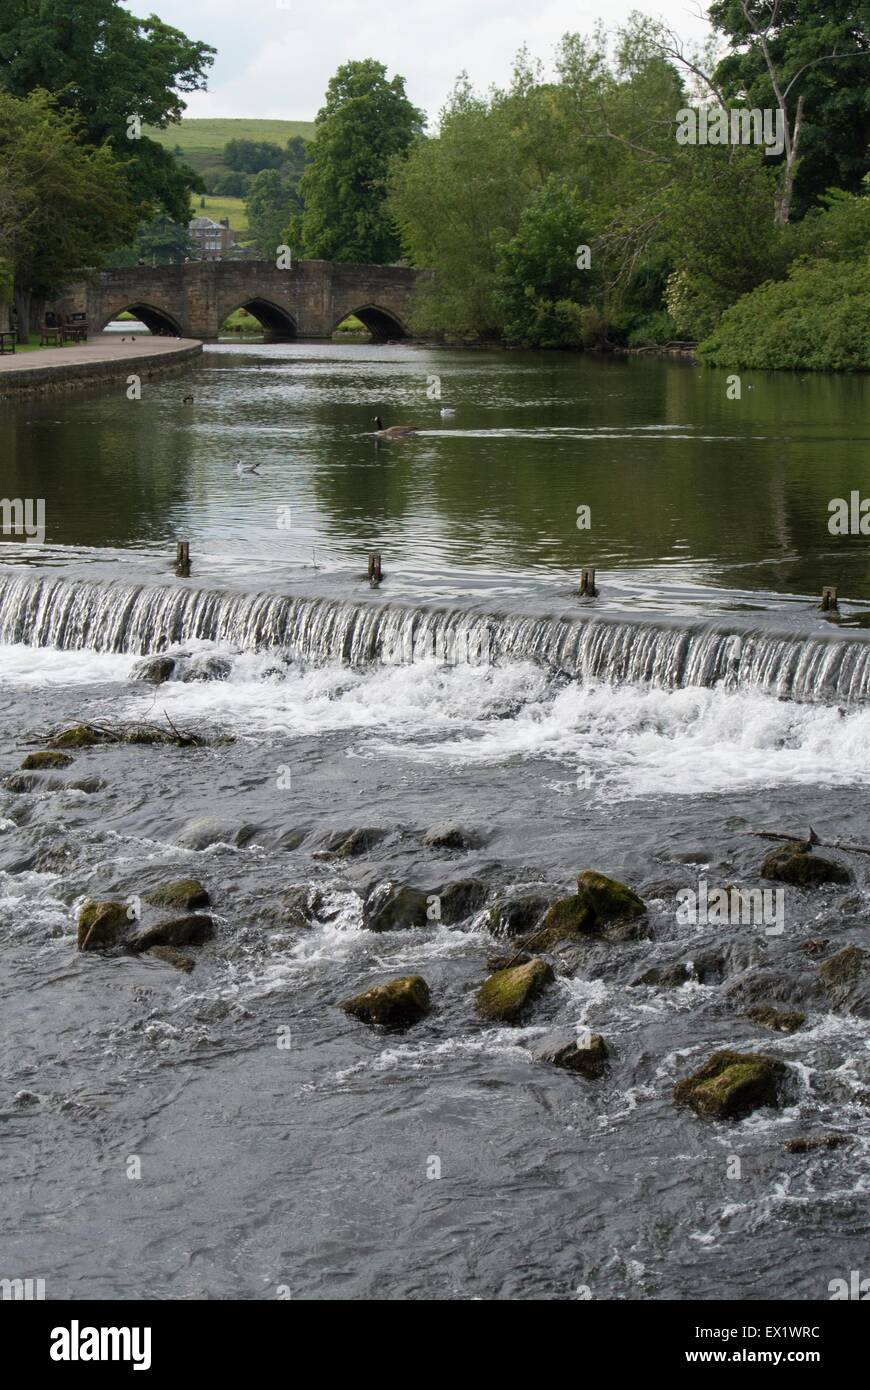 River weir on the River Wye Bakewell - Stock Image